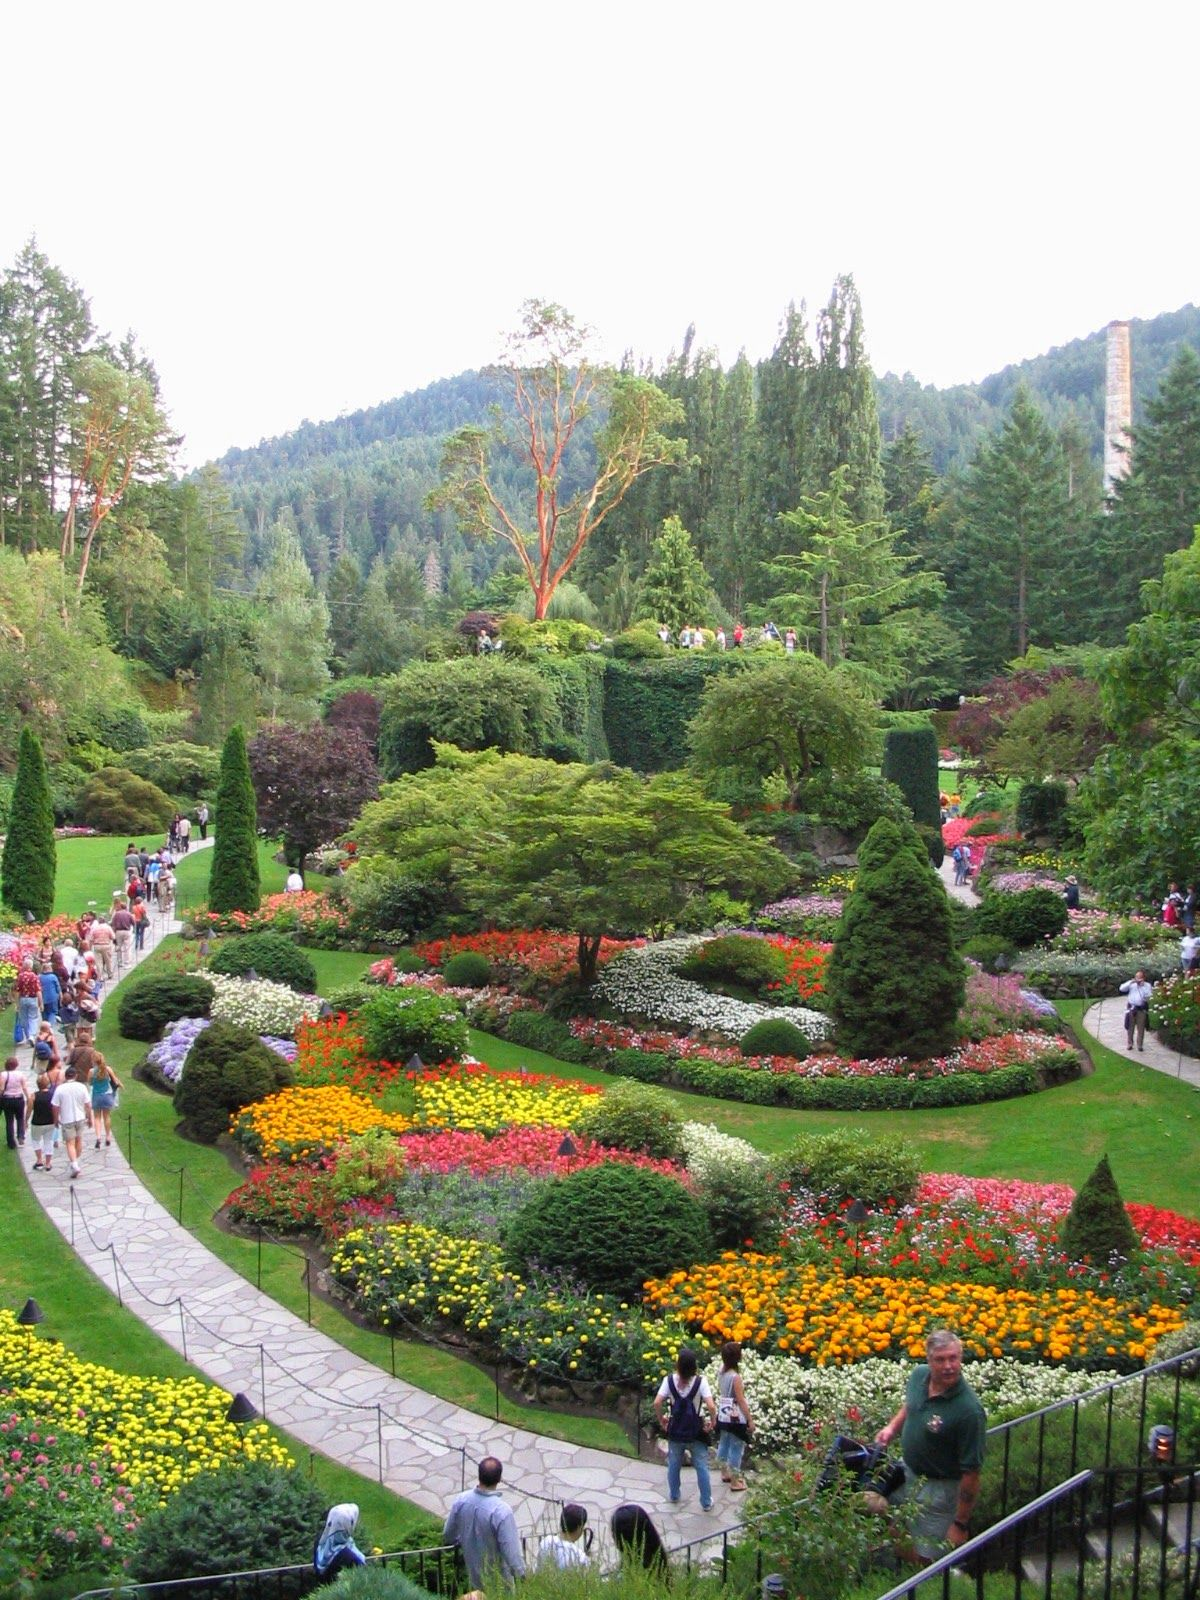 0611b20e518bf8a8eec0903d583505bd - Butchart Gardens Best Month To Visit